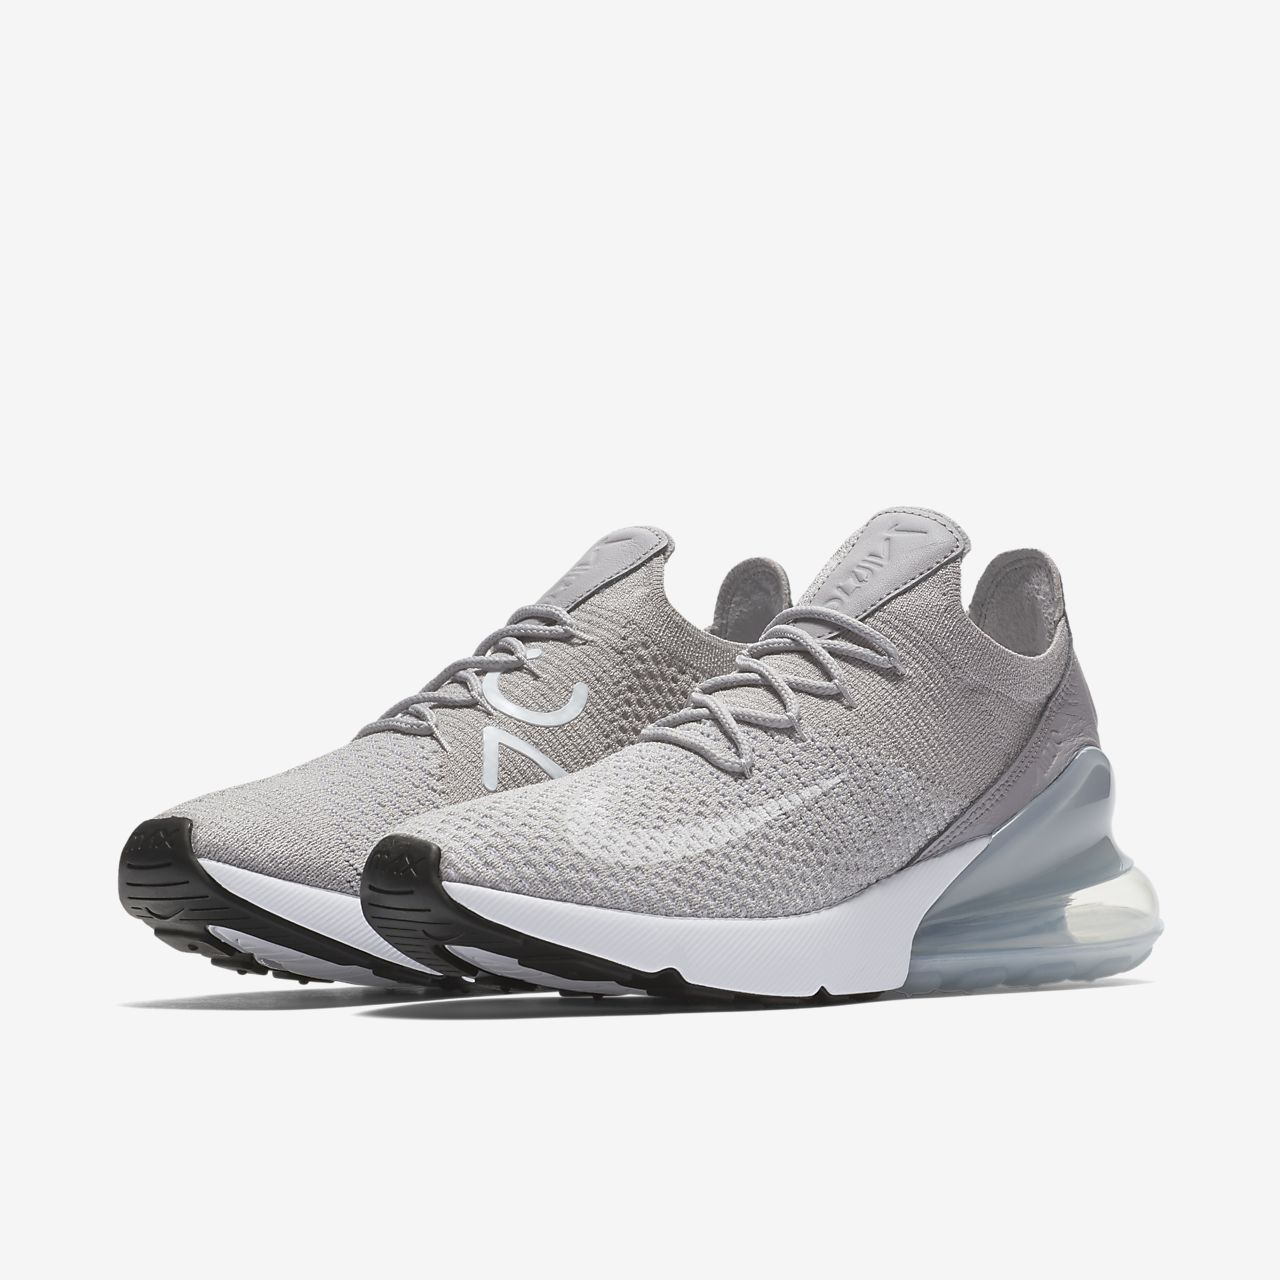 buy online cba0d 249b0 nike air max 270 flyknit bambino scontate